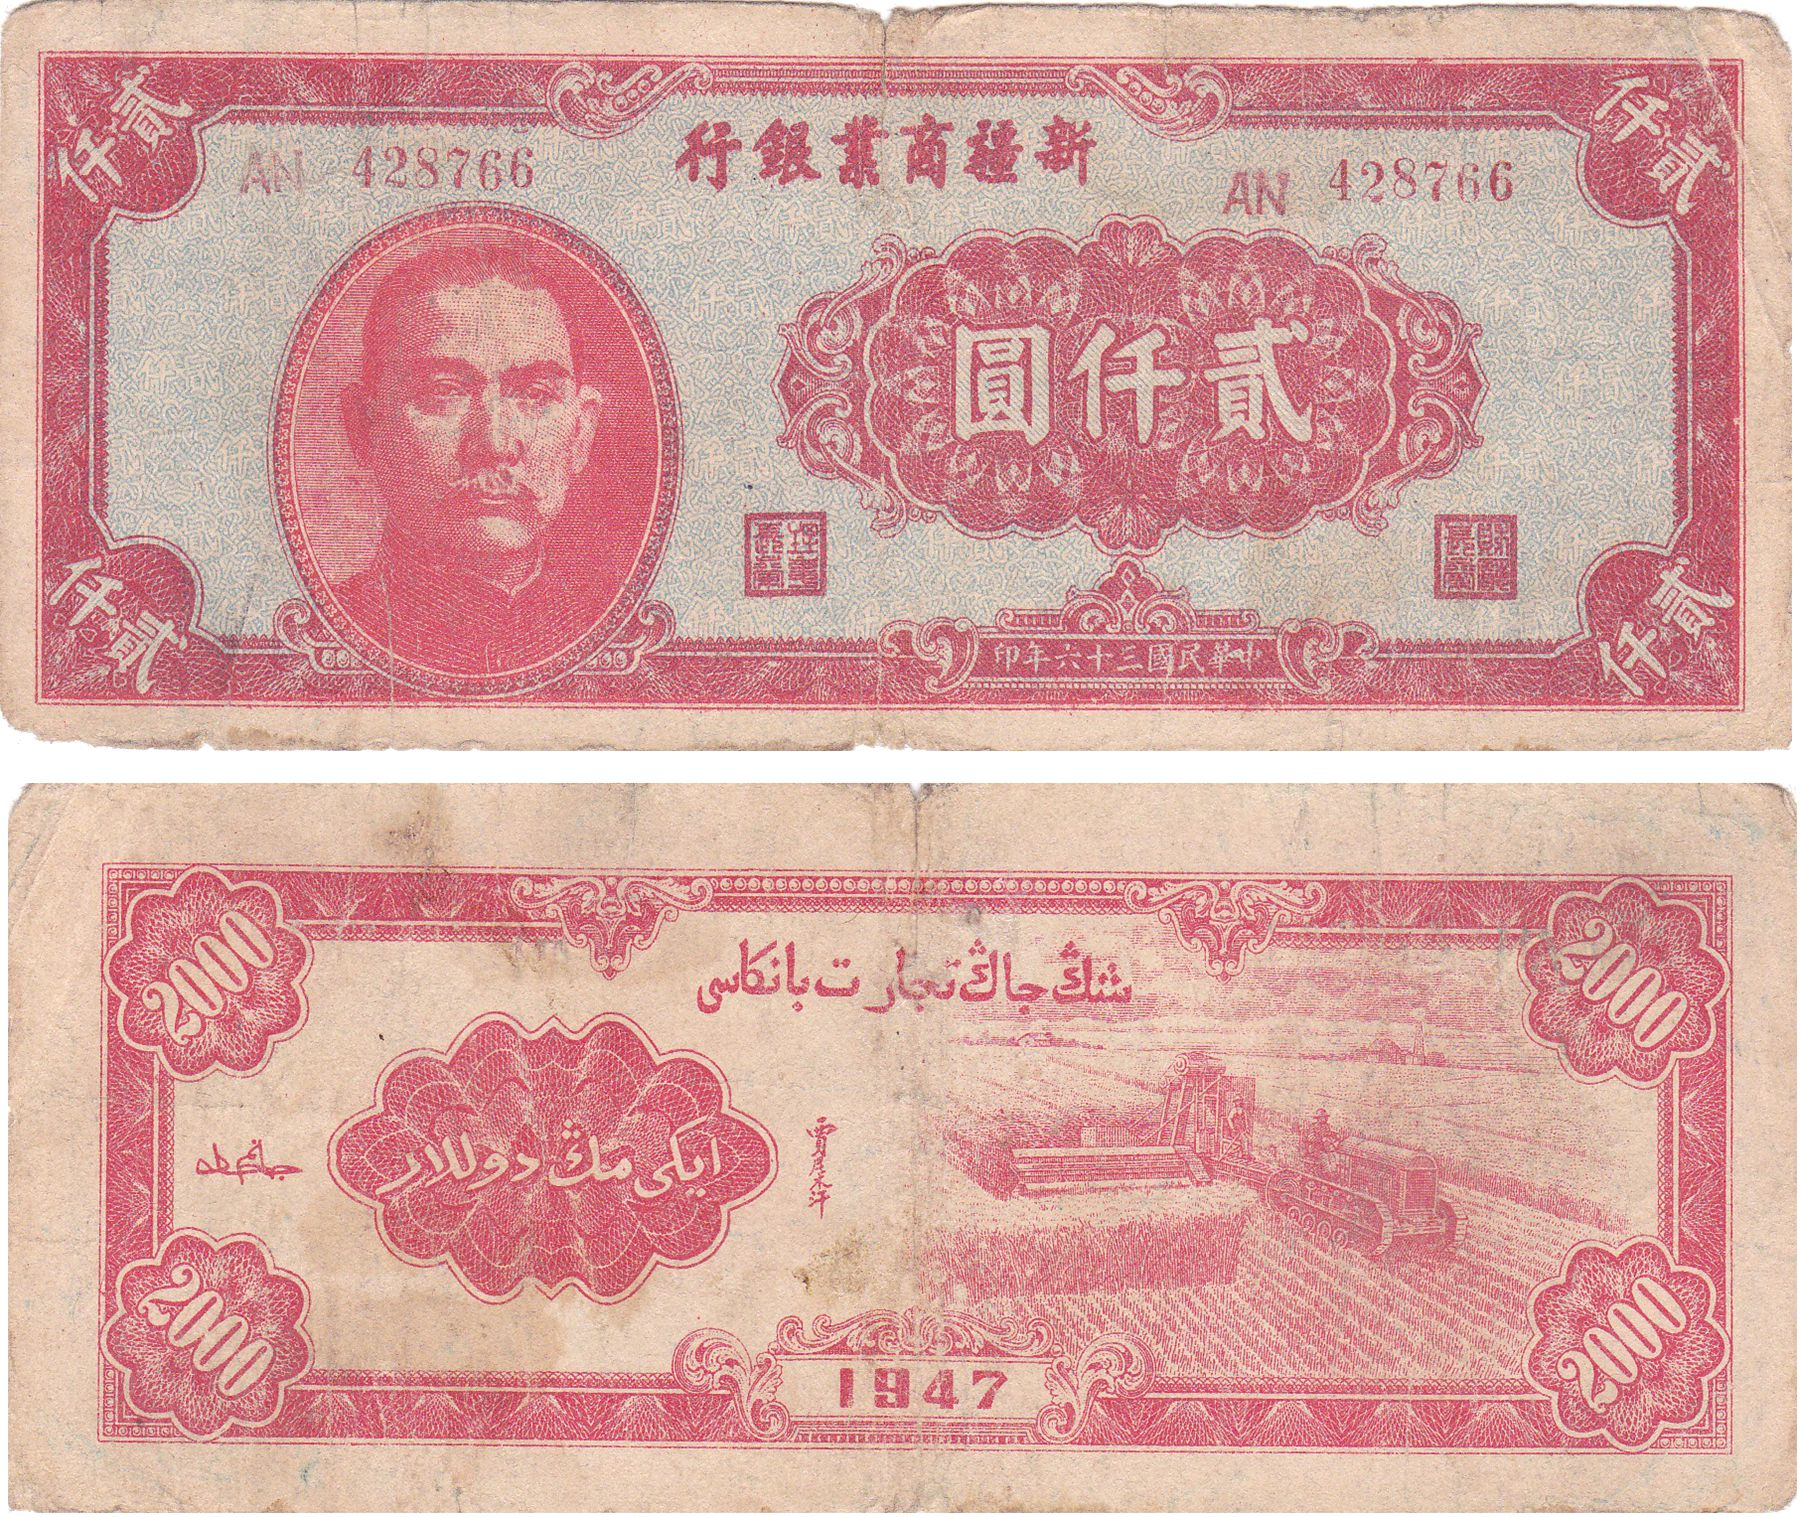 XJ0188, Sinkiang Commercial Bank 2000 Dollars Banknote, S1771, 1947